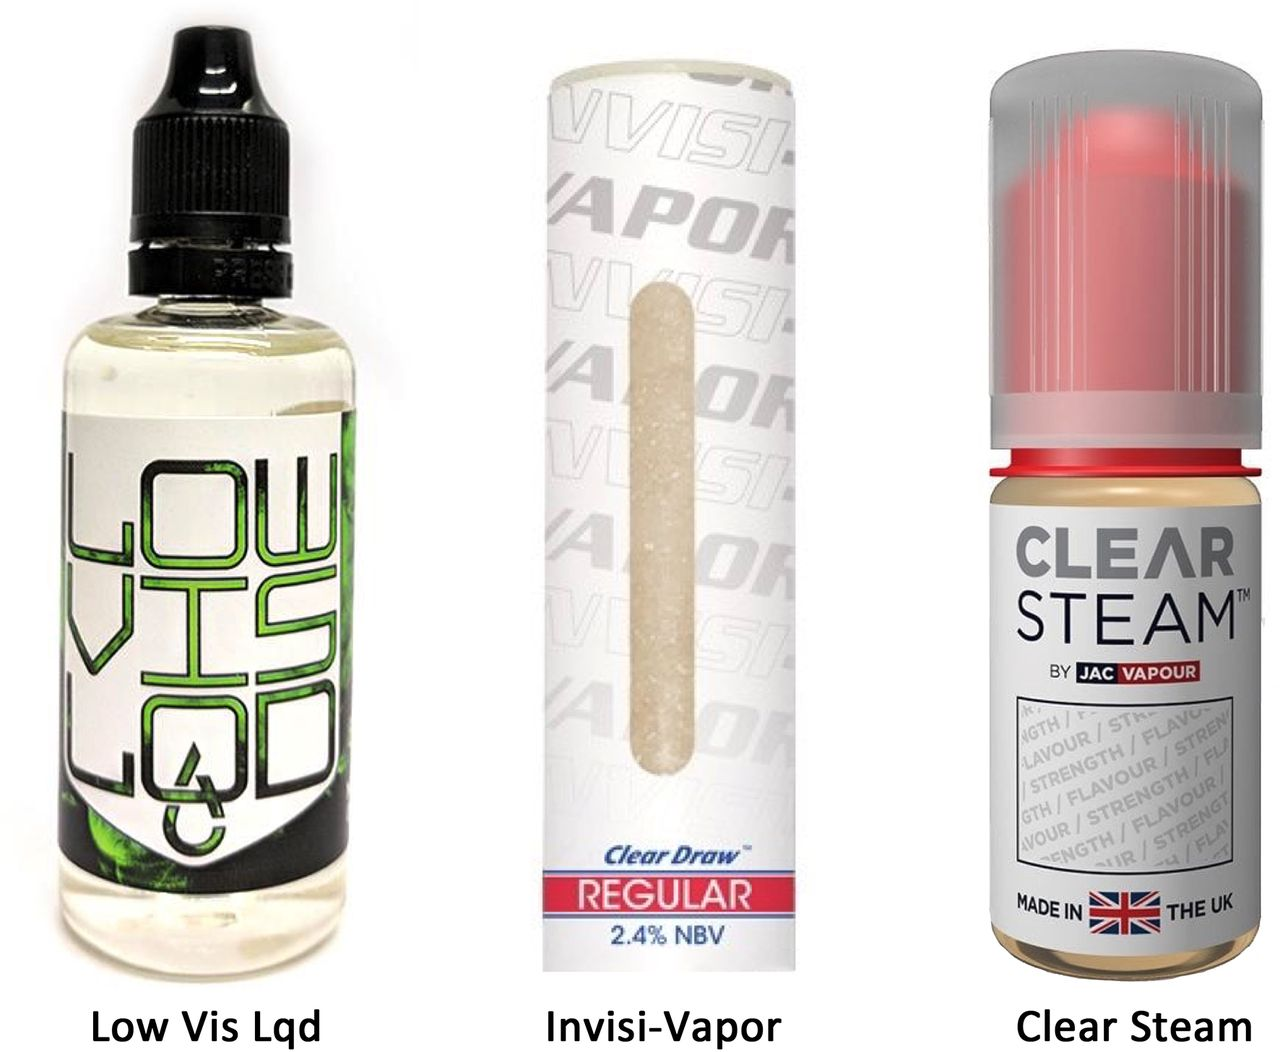 JUUL and other stealth vaporisers: hiding the habit from parents and